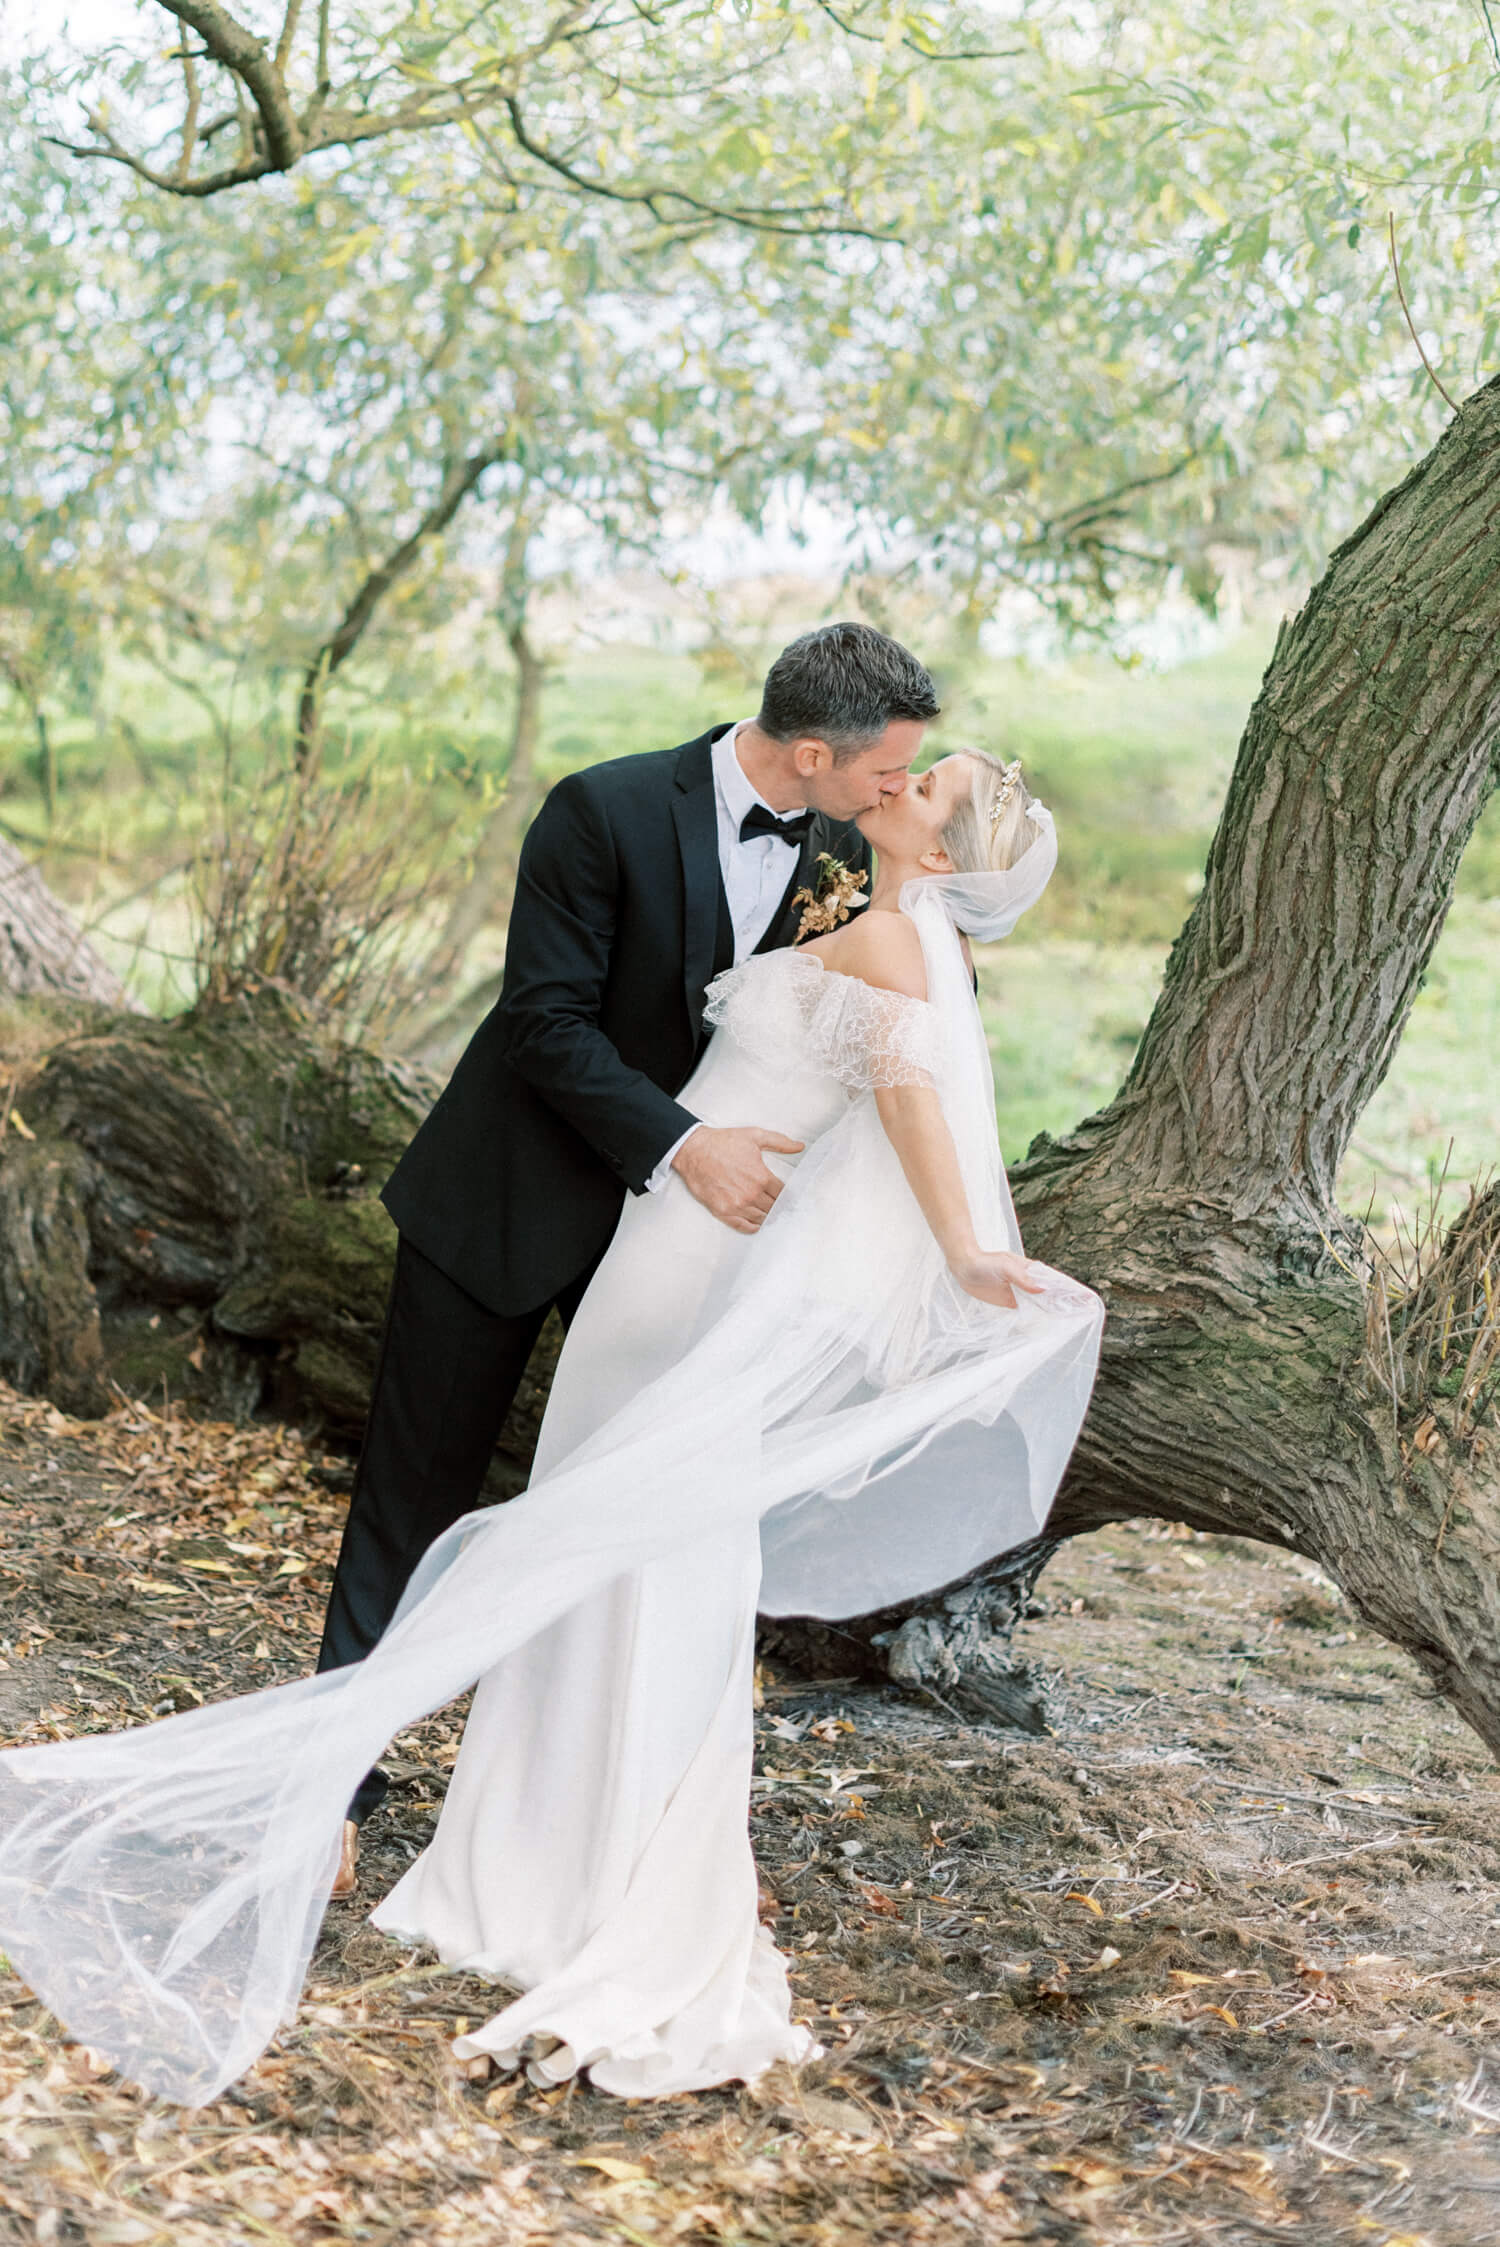 Cherry Williams London custom off-shoulder mermaid wedding gown with soft tulle veil